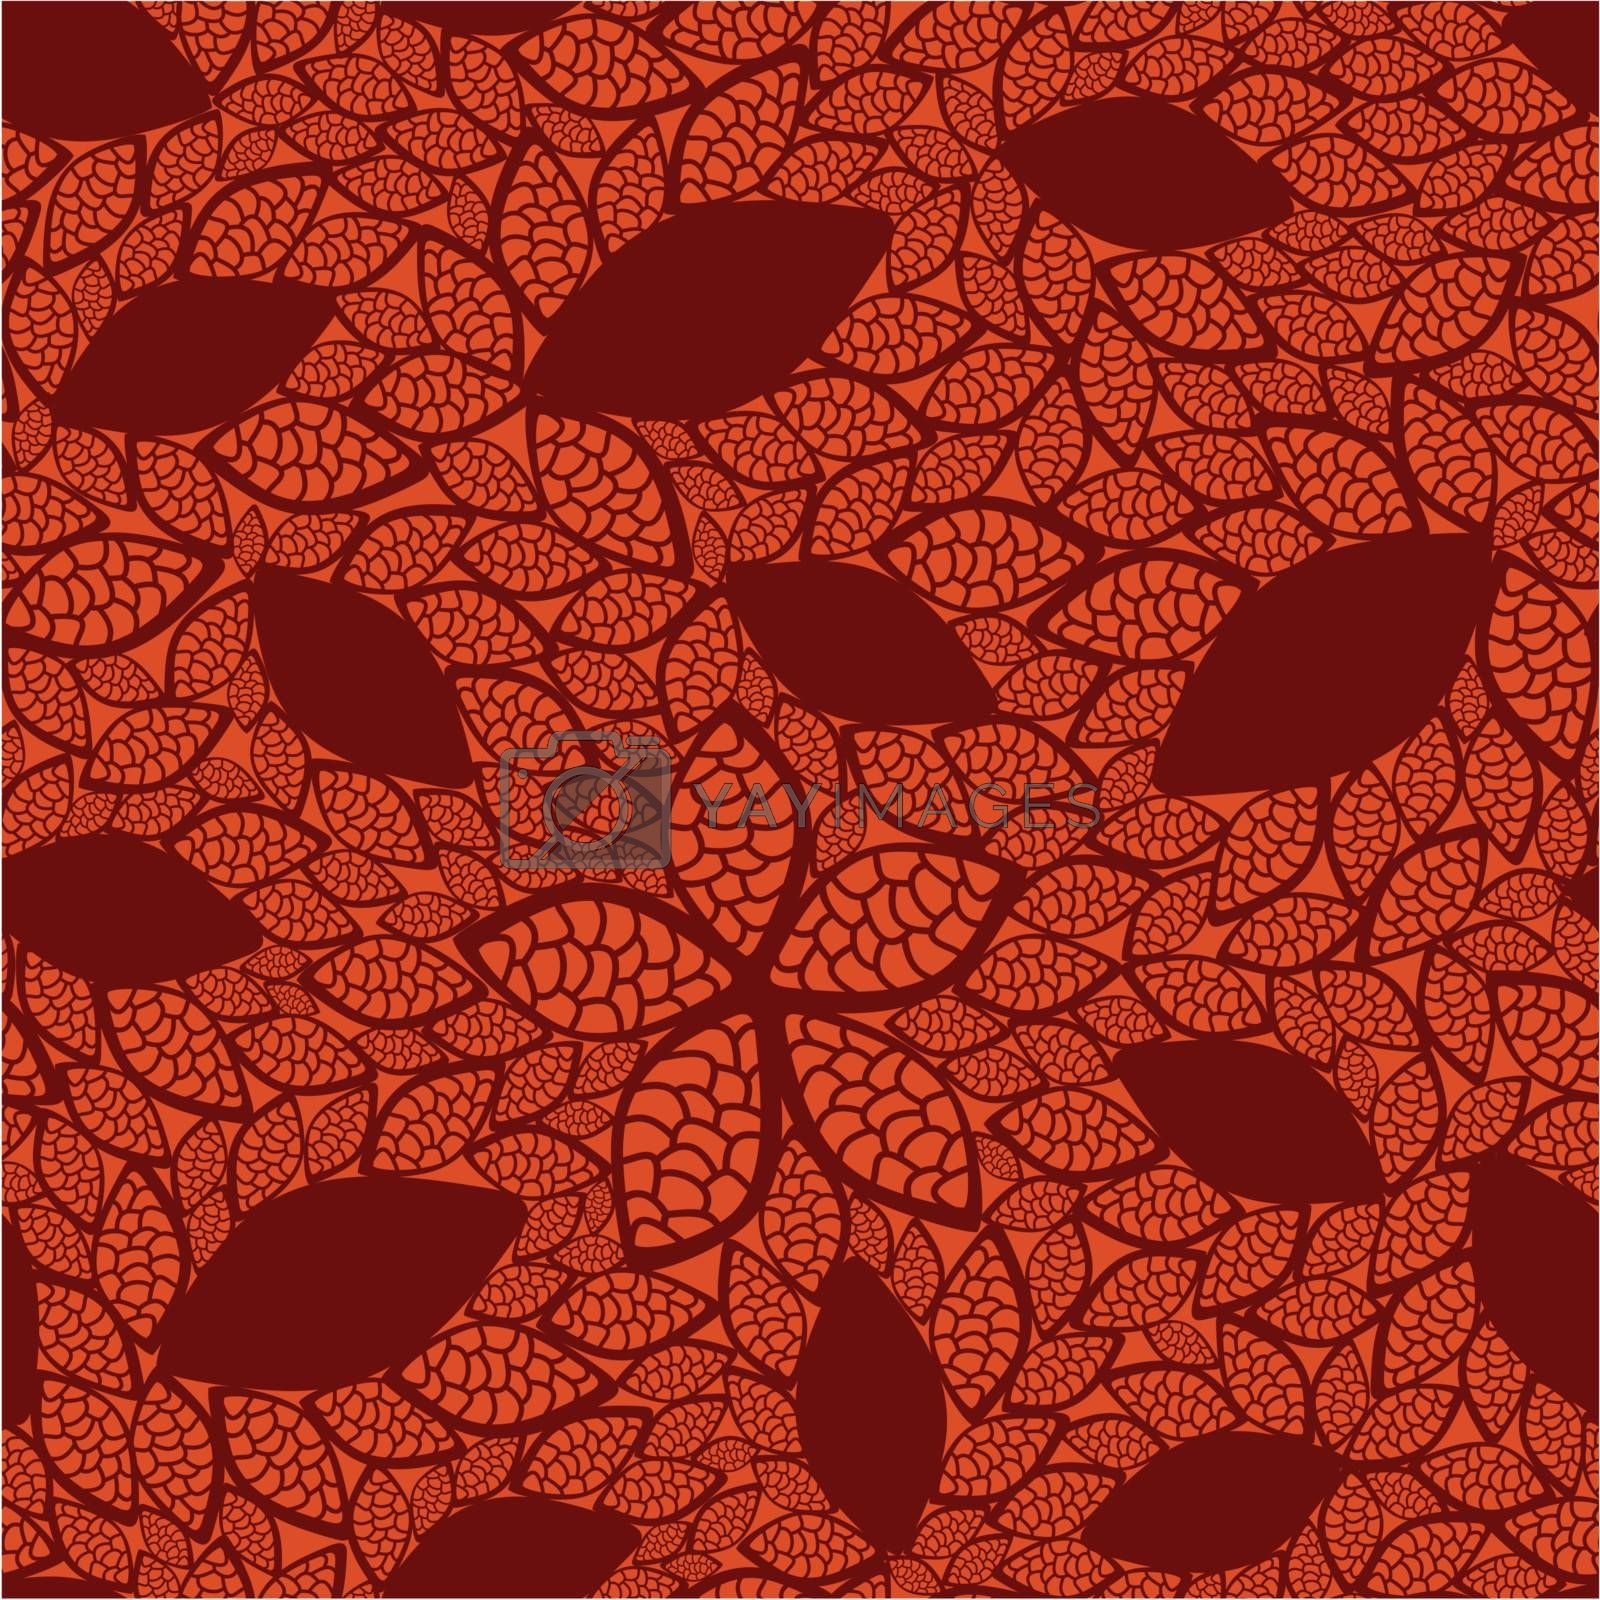 Seamless red leaves pattern on orange background. This image is a vector illustration. Please visit my portfolio for more similar illustrations.